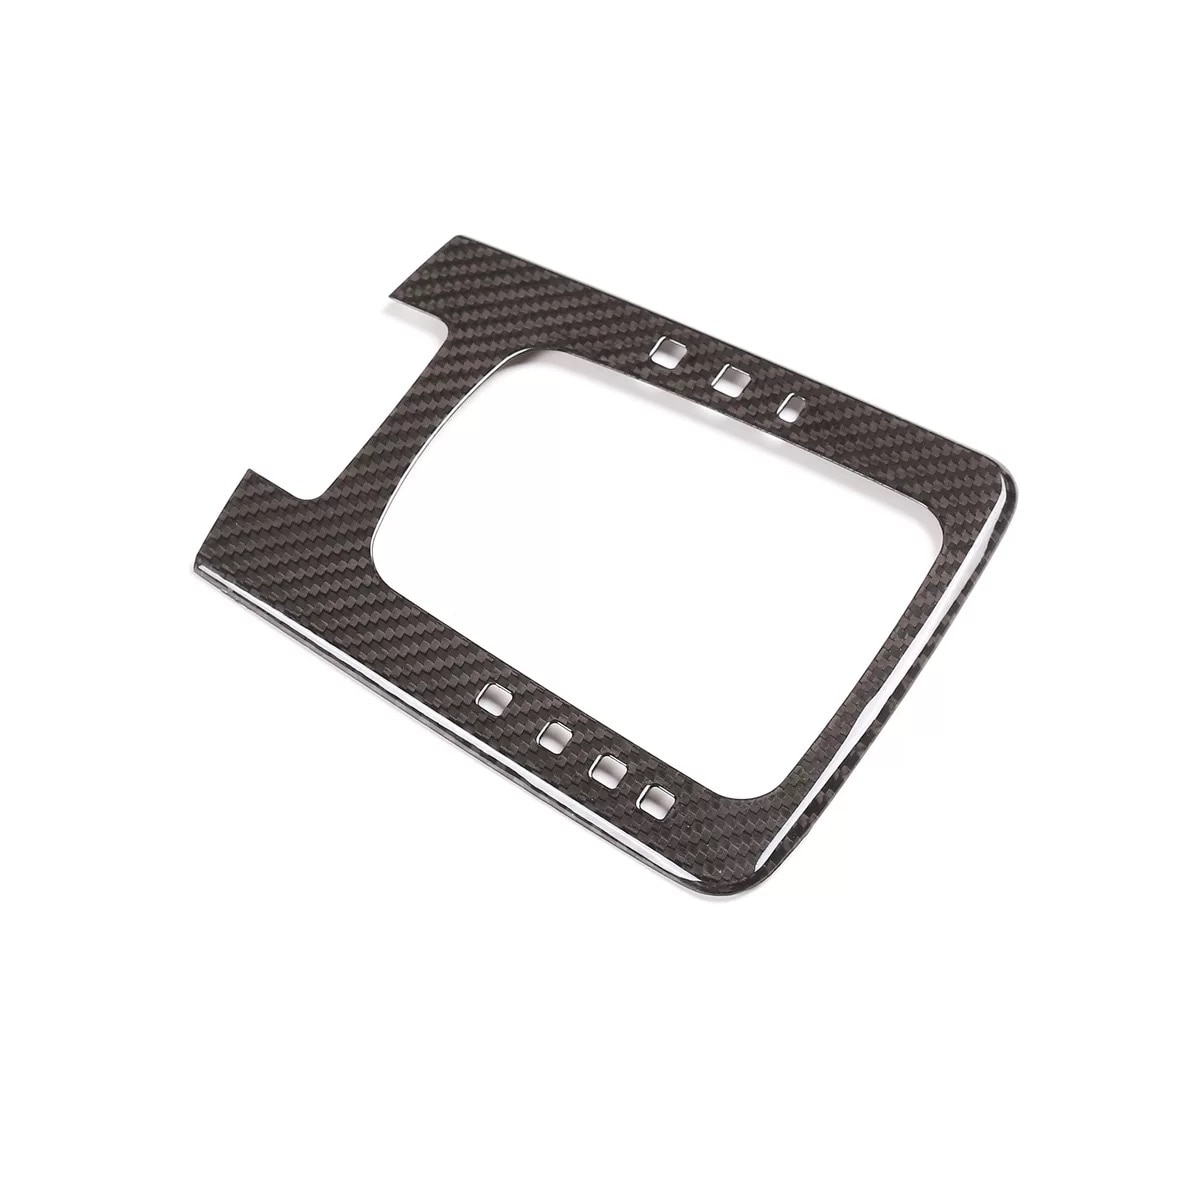 Dry Carbon Interior Gear Shift Frame Cover For Porsche 718 Cayman Boxster 911 enlarge